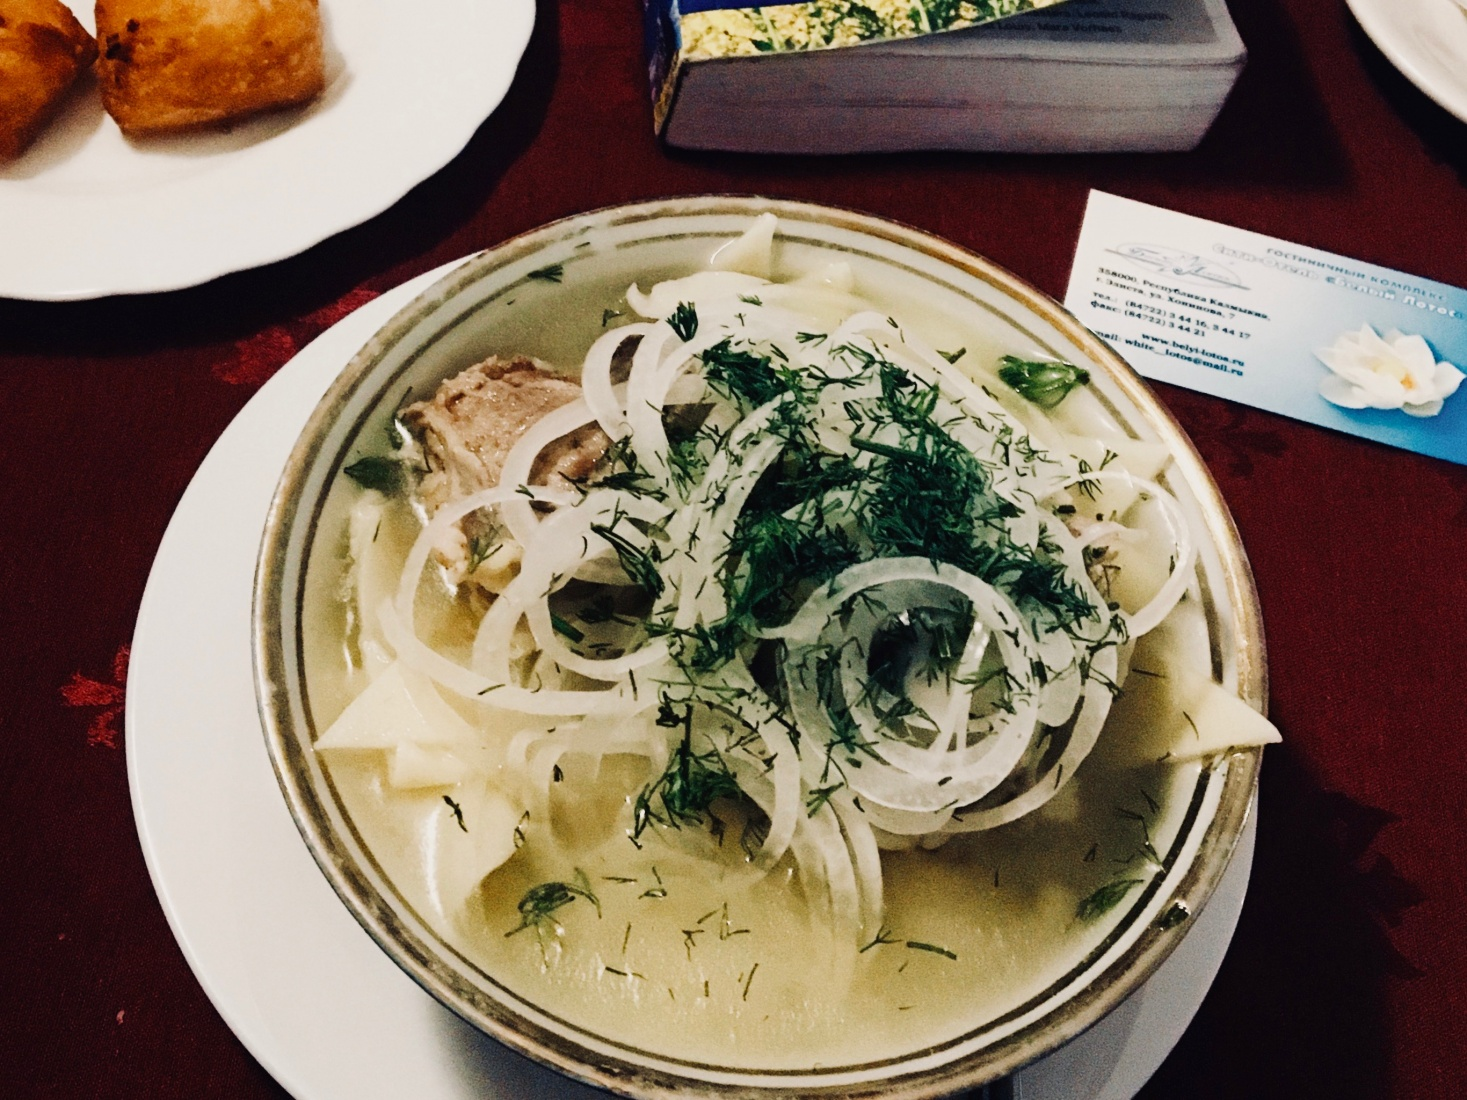 Kalmyk meal hasn makhn, slices of mutton-muscle, served on pasta and covered in onion. In Elista, Russia.